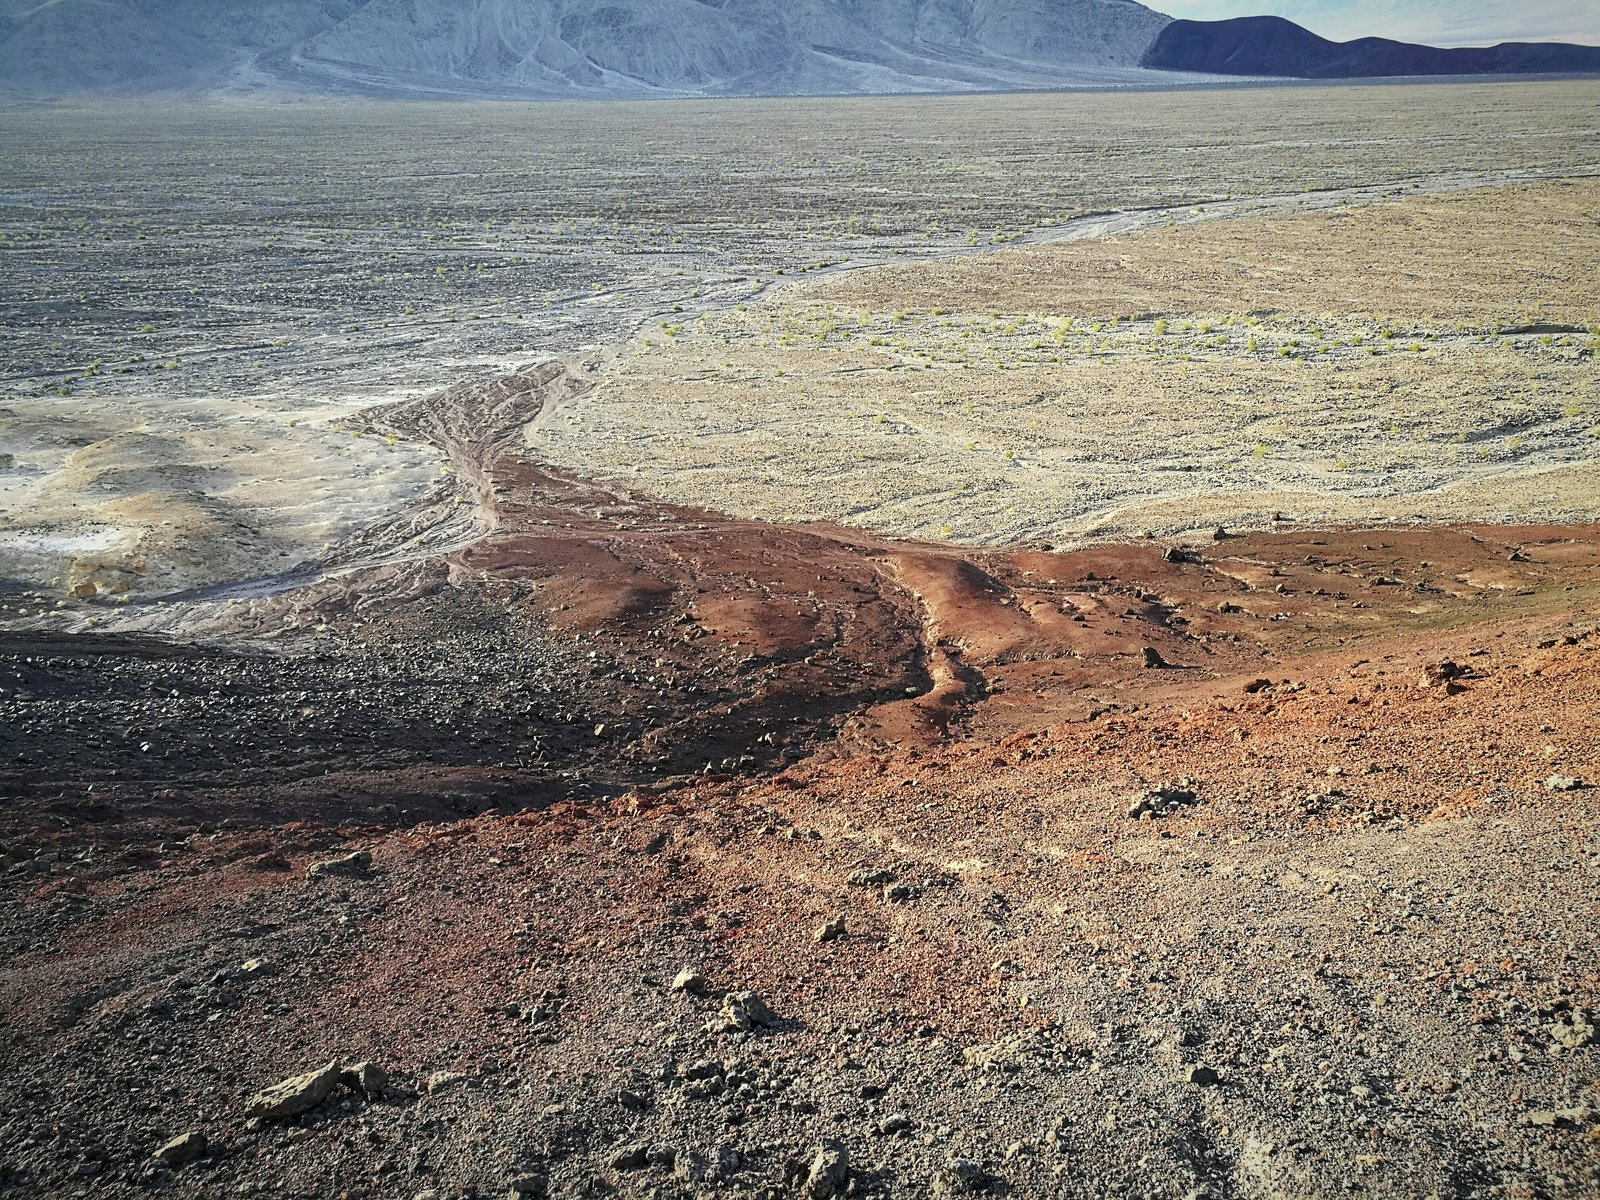 img_20170422_083009-jpg.37814_Where my Heart Lives; Dakotas to Death Valley_Travel Stories_Squat the Planet_10:07 AM